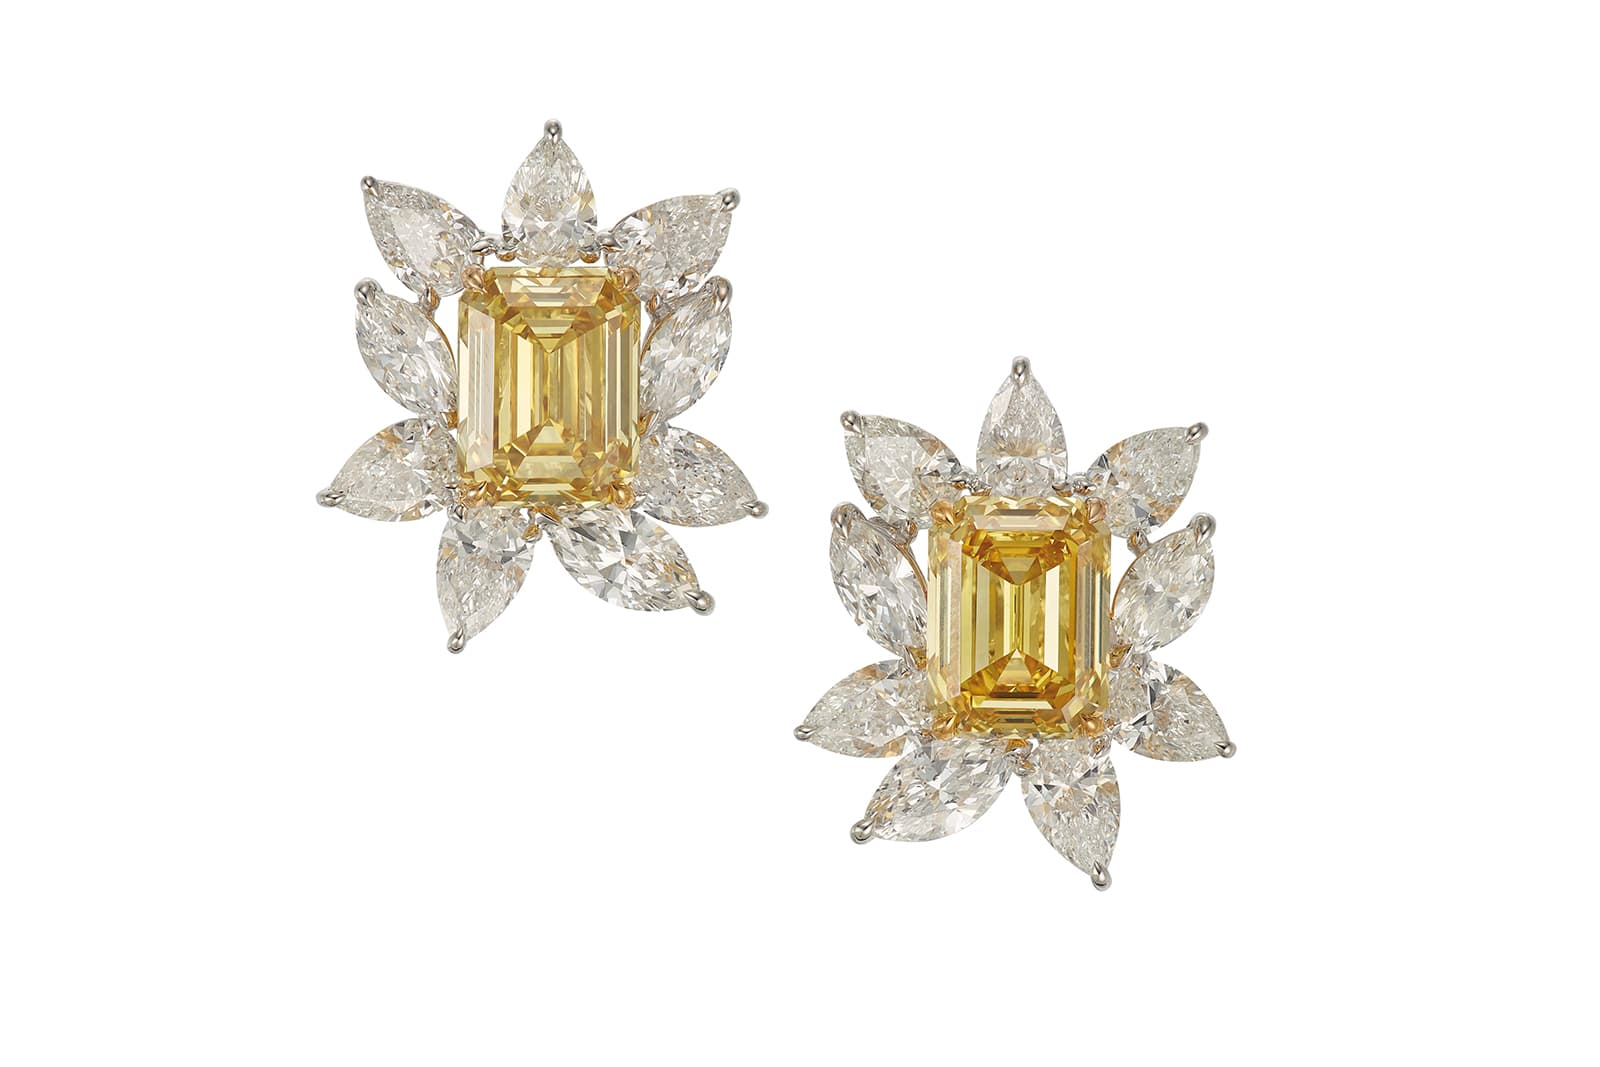 A pair of fancy deep yellow diamond earrings of 7.55 carats and 7.51 carats